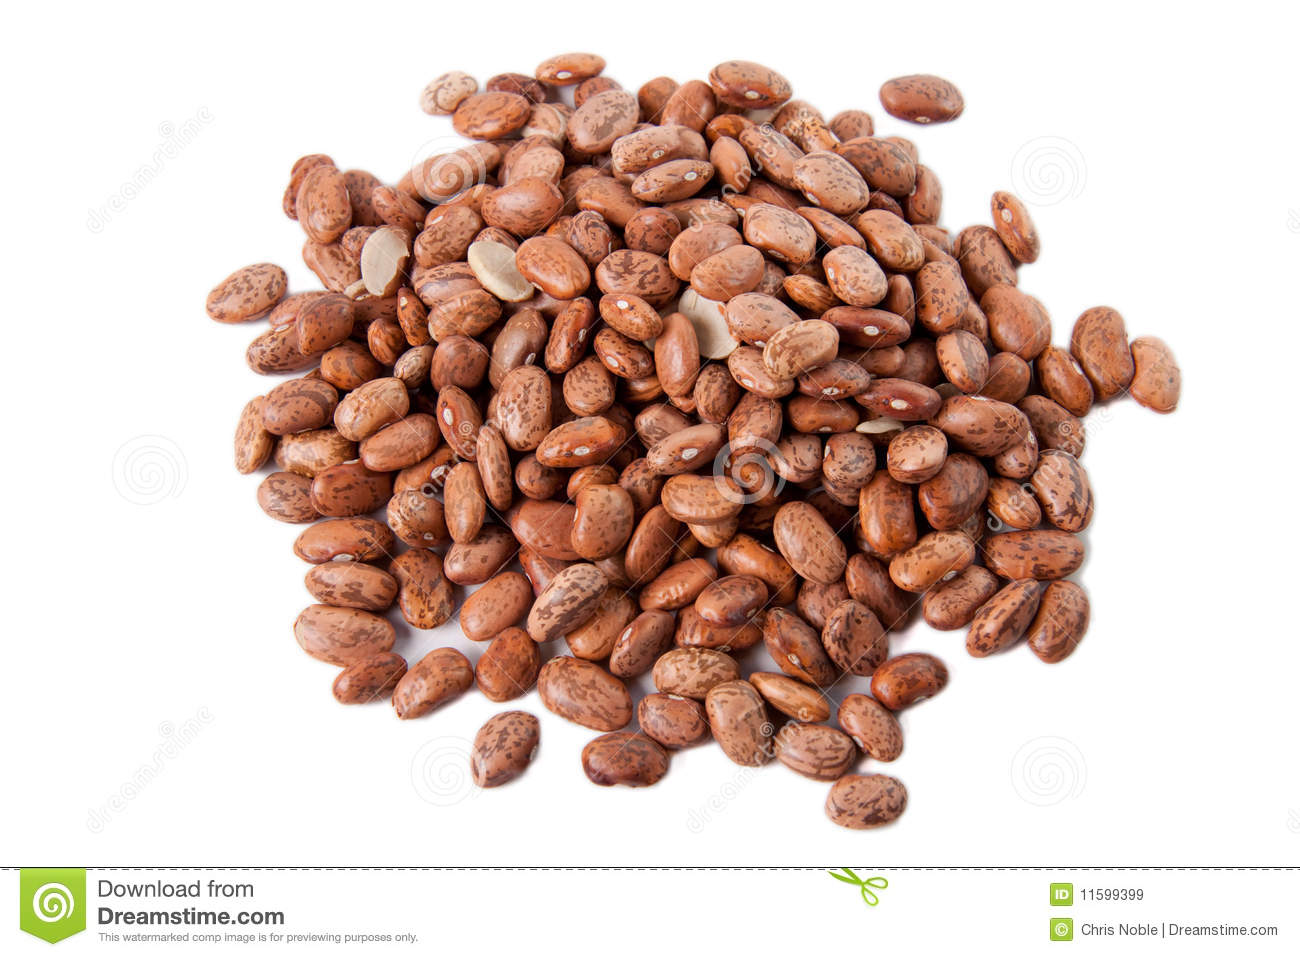 Are Pinto Beans A Good Diet Food